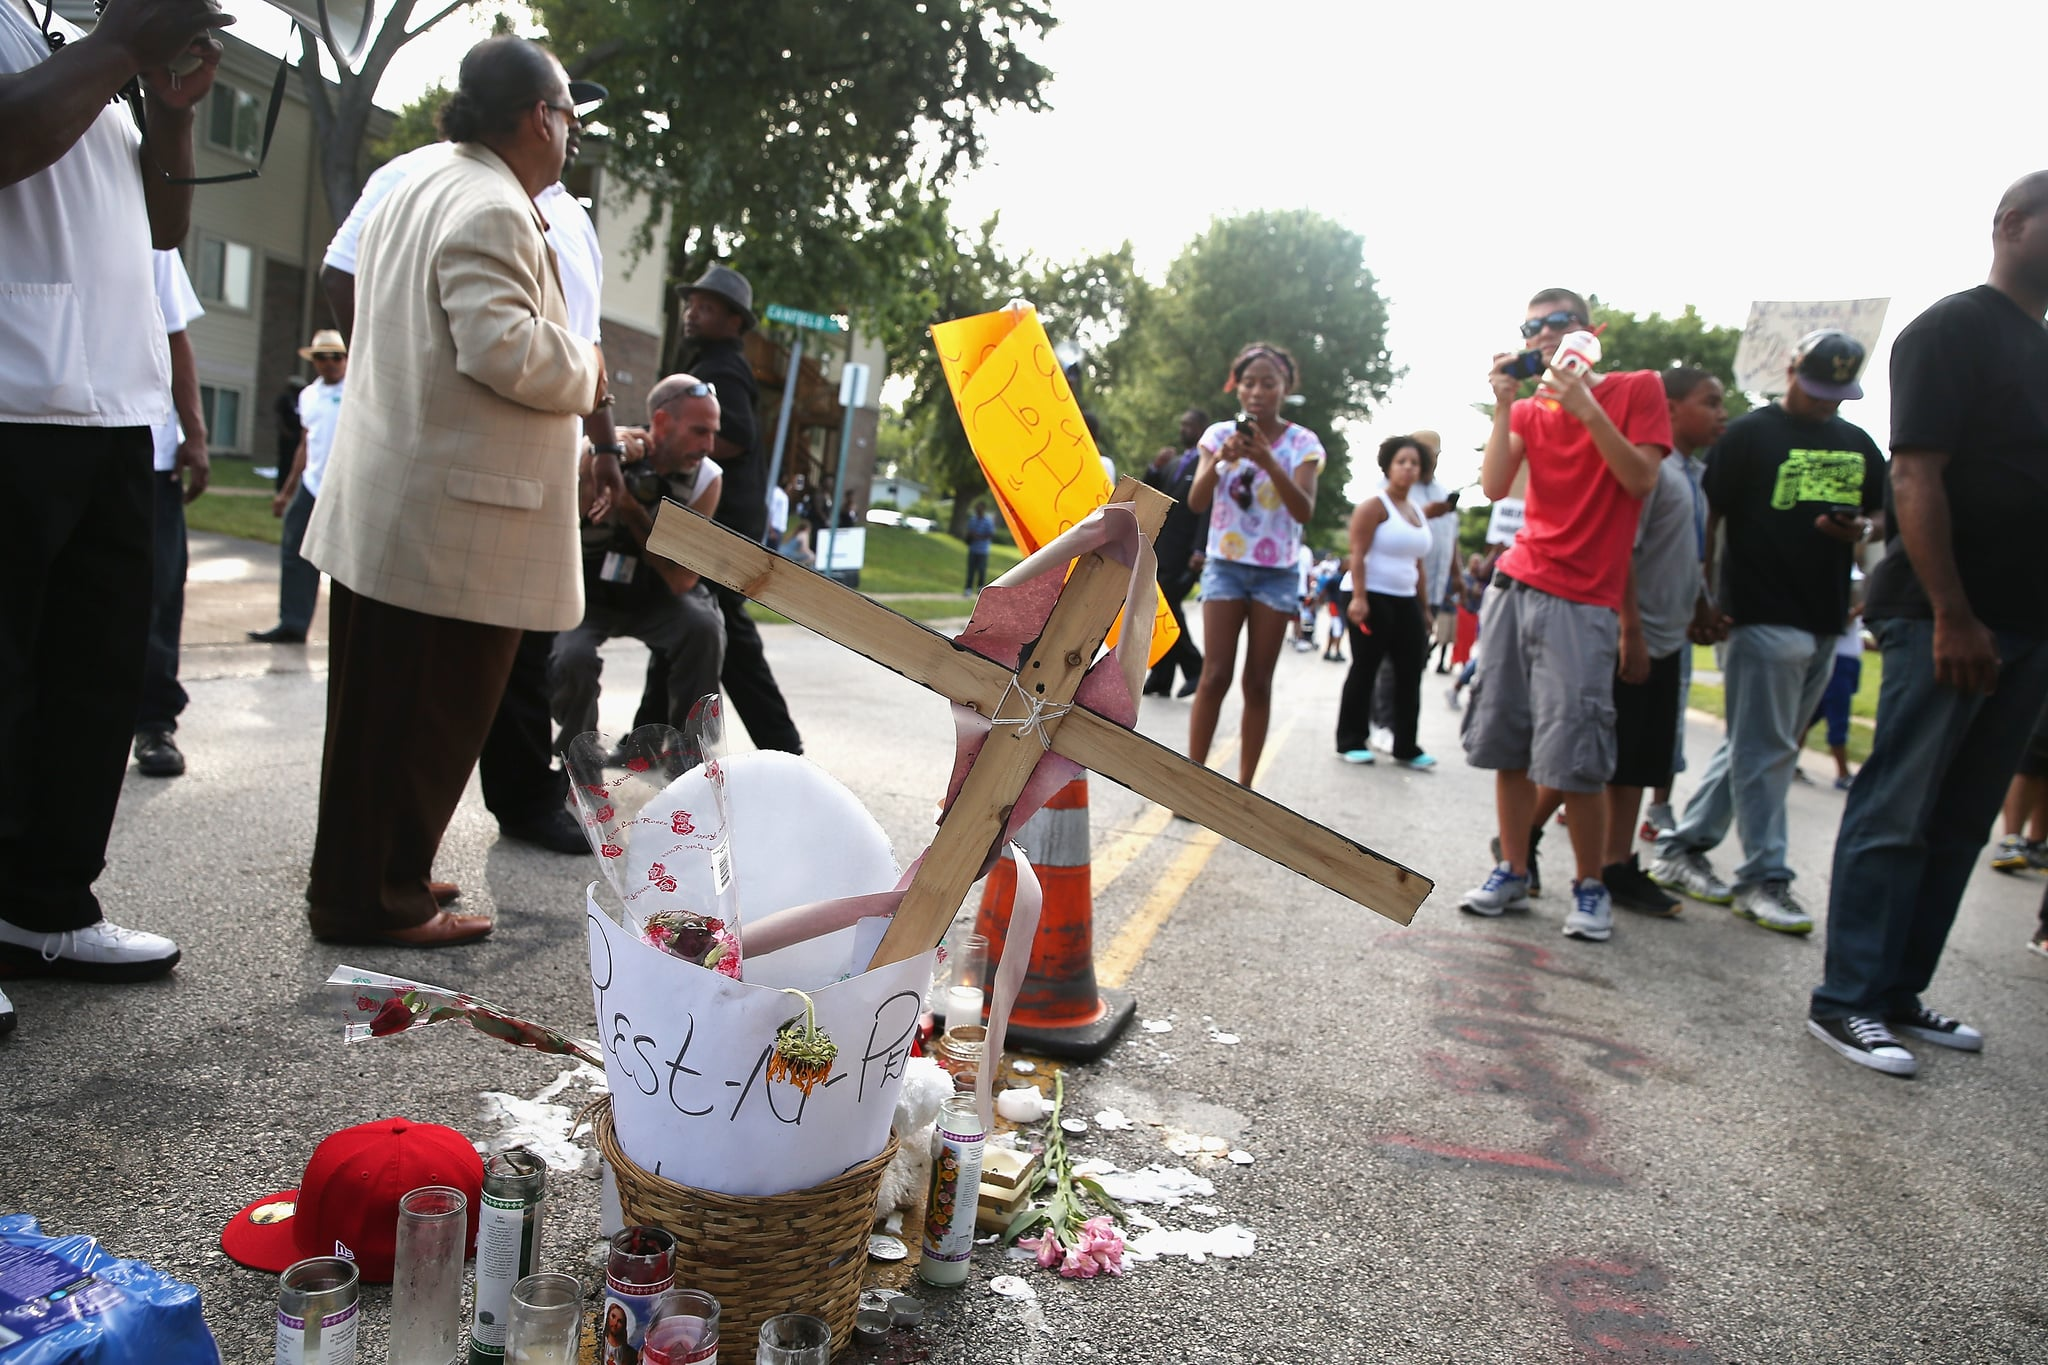 A cross, flowers, and candles were placed at the spot where Michael Brown was killed.